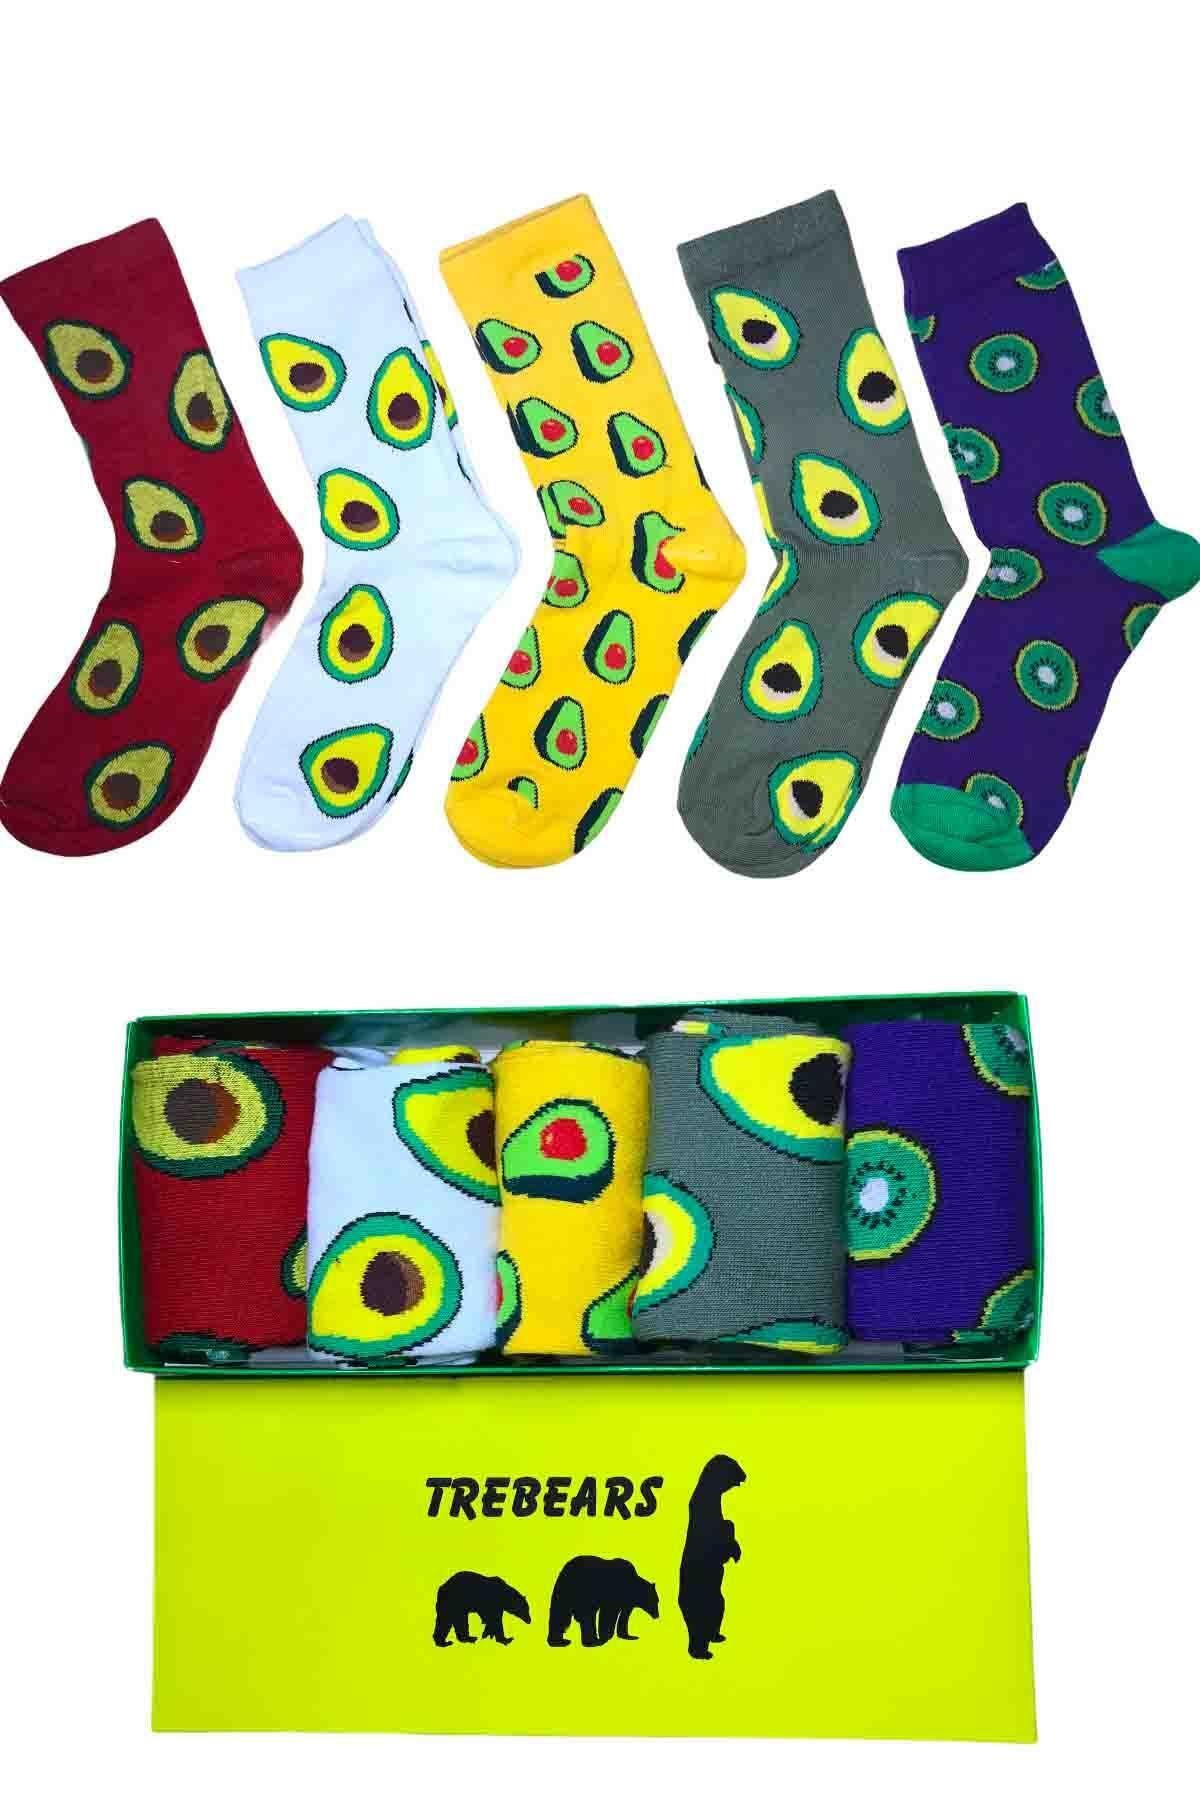 2021 New Fashion Avocado Fruit Patterned Socks And Kiwi 5 Pieces Set Comfortable Aesthetic Patterned Cotton New Style Soft